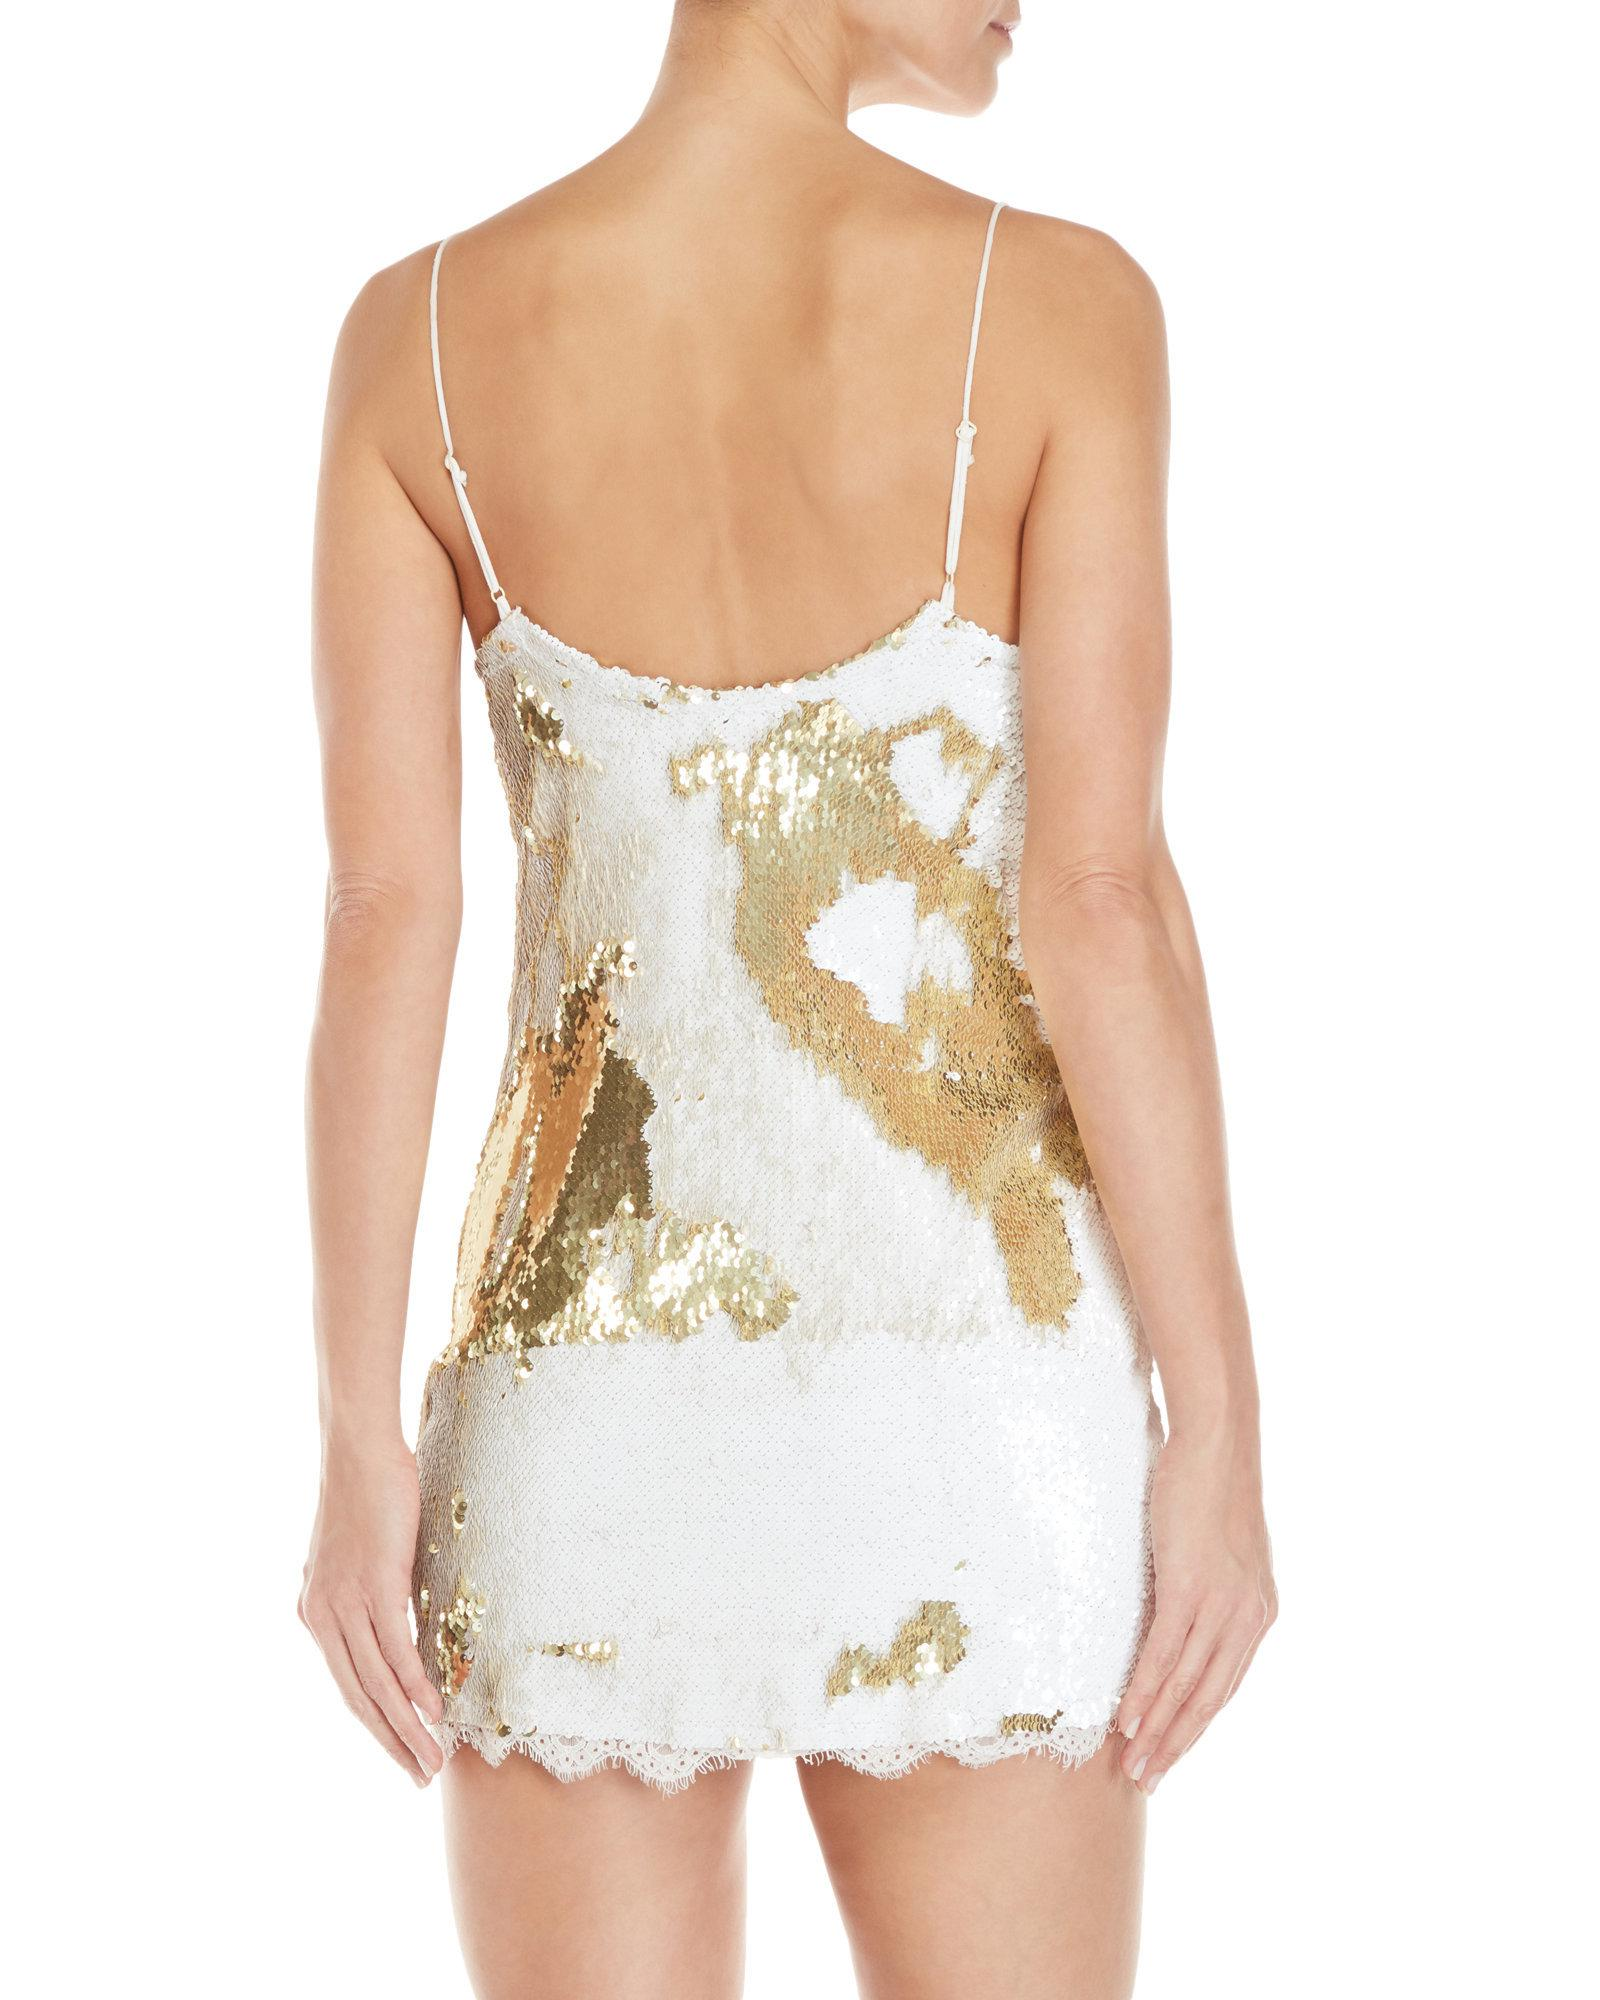 9c9ff1e7c7cee Free People Seeing Double Sequin Slip Dress in White - Lyst